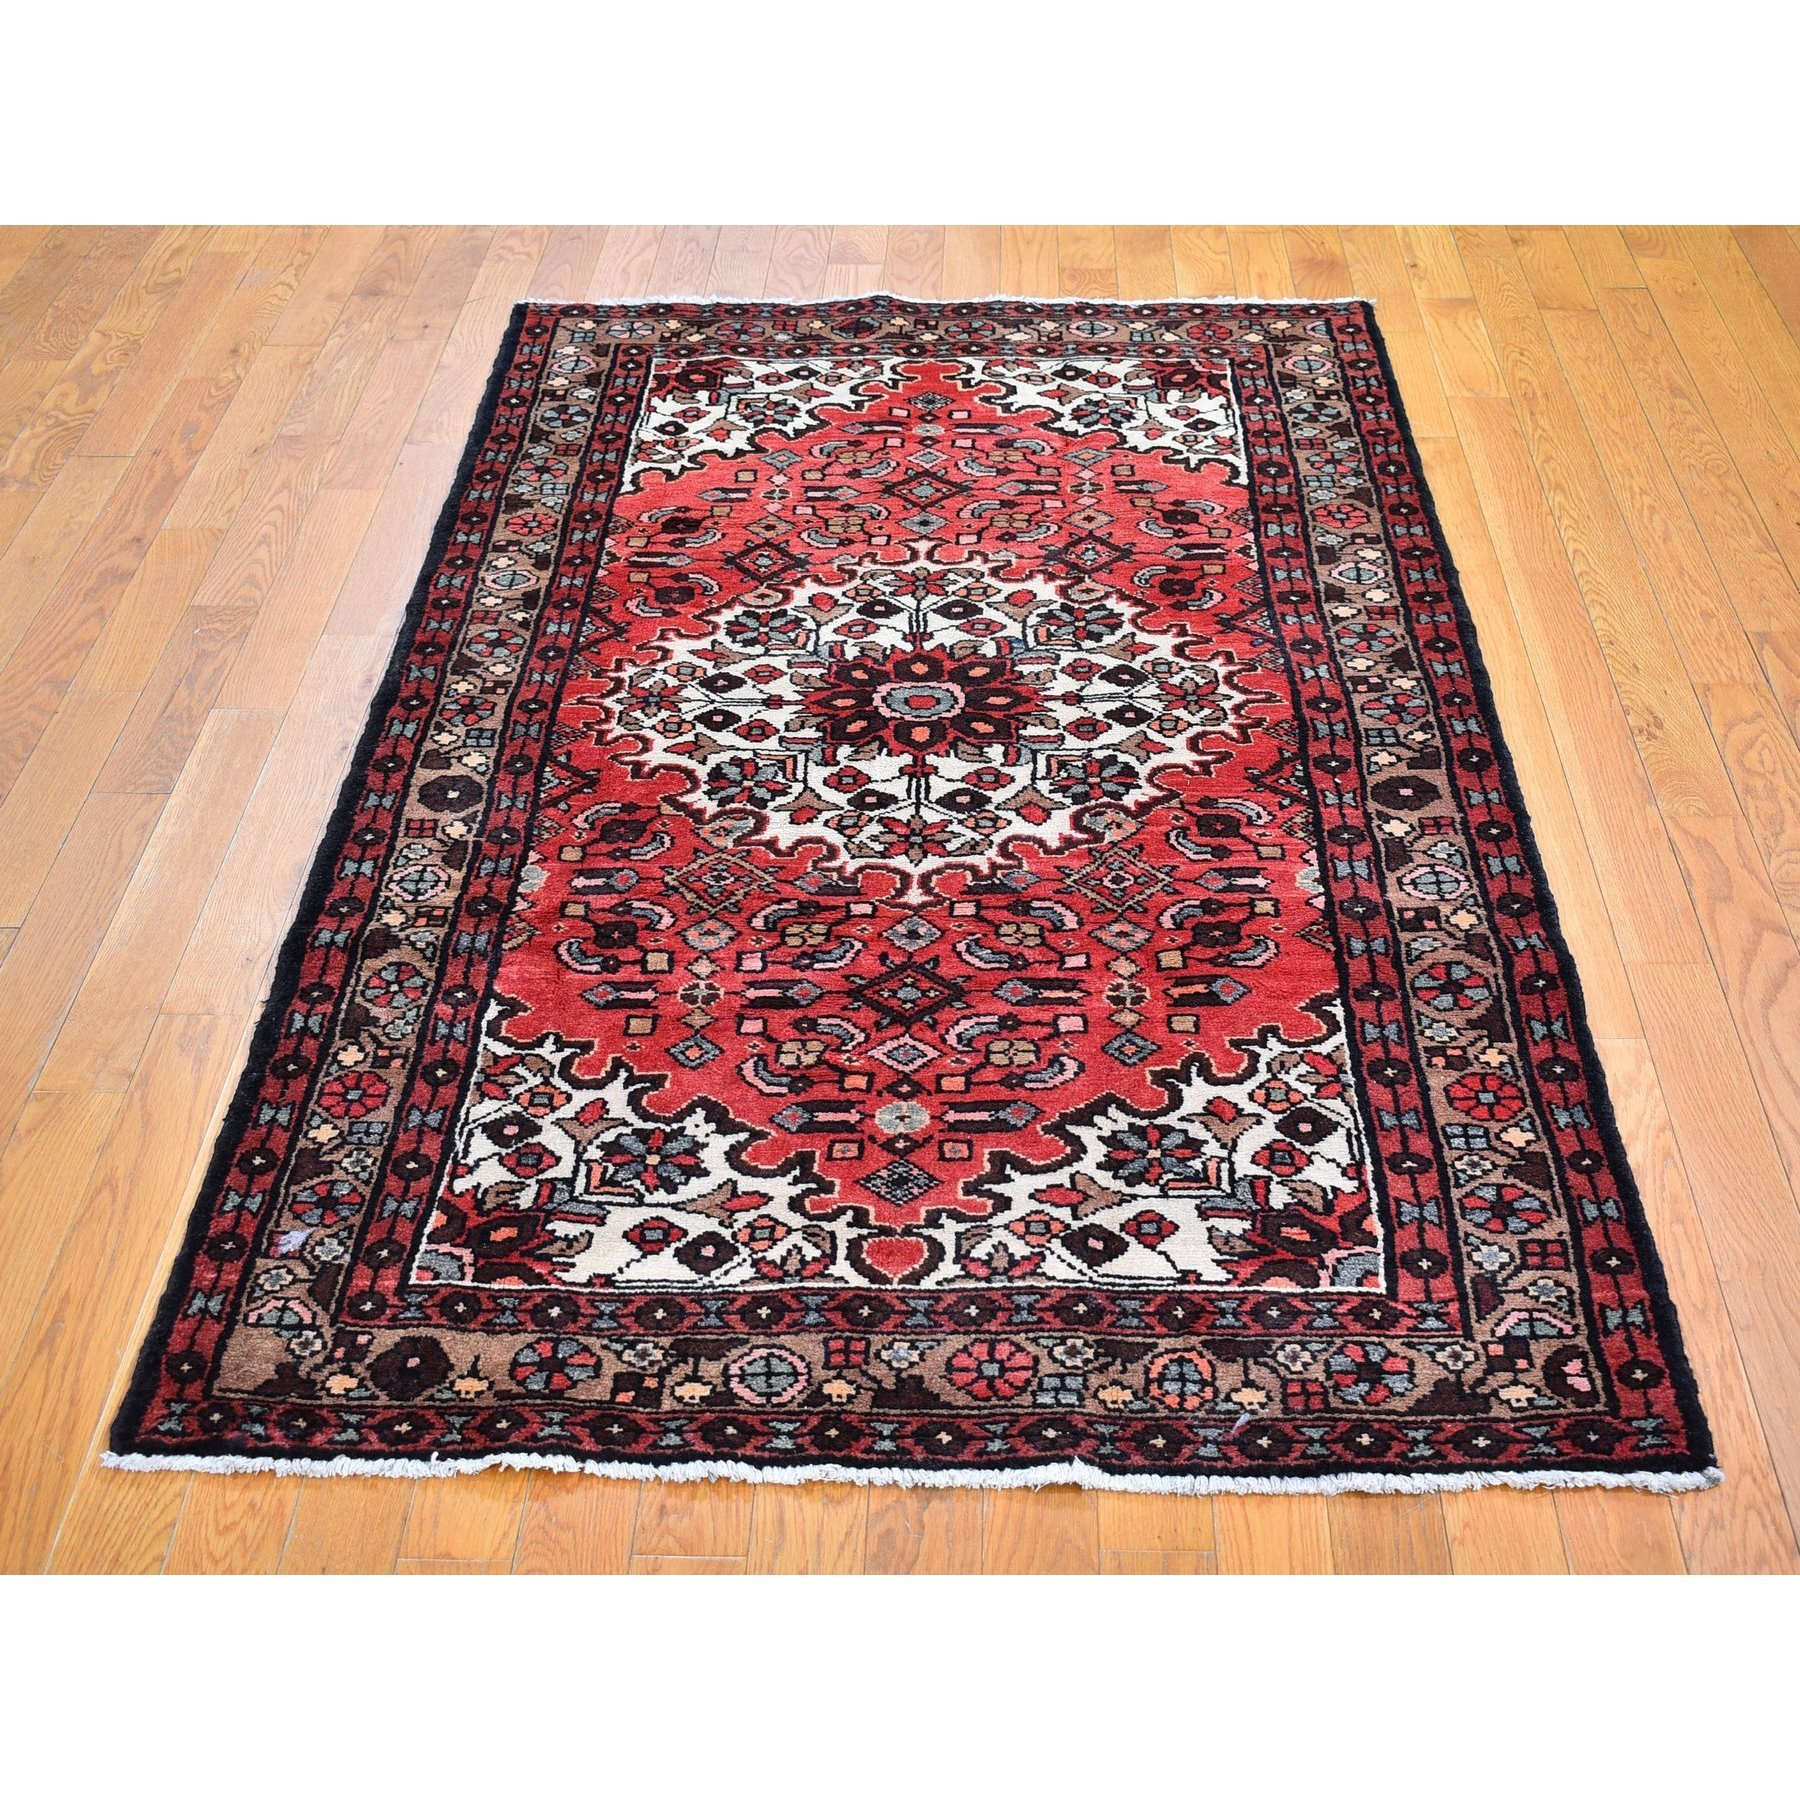 4'x7' Red Vintage Persian Hamadan with Flower Design Full Pile Clean Hand Knotted Pure Wool Oriental Rug